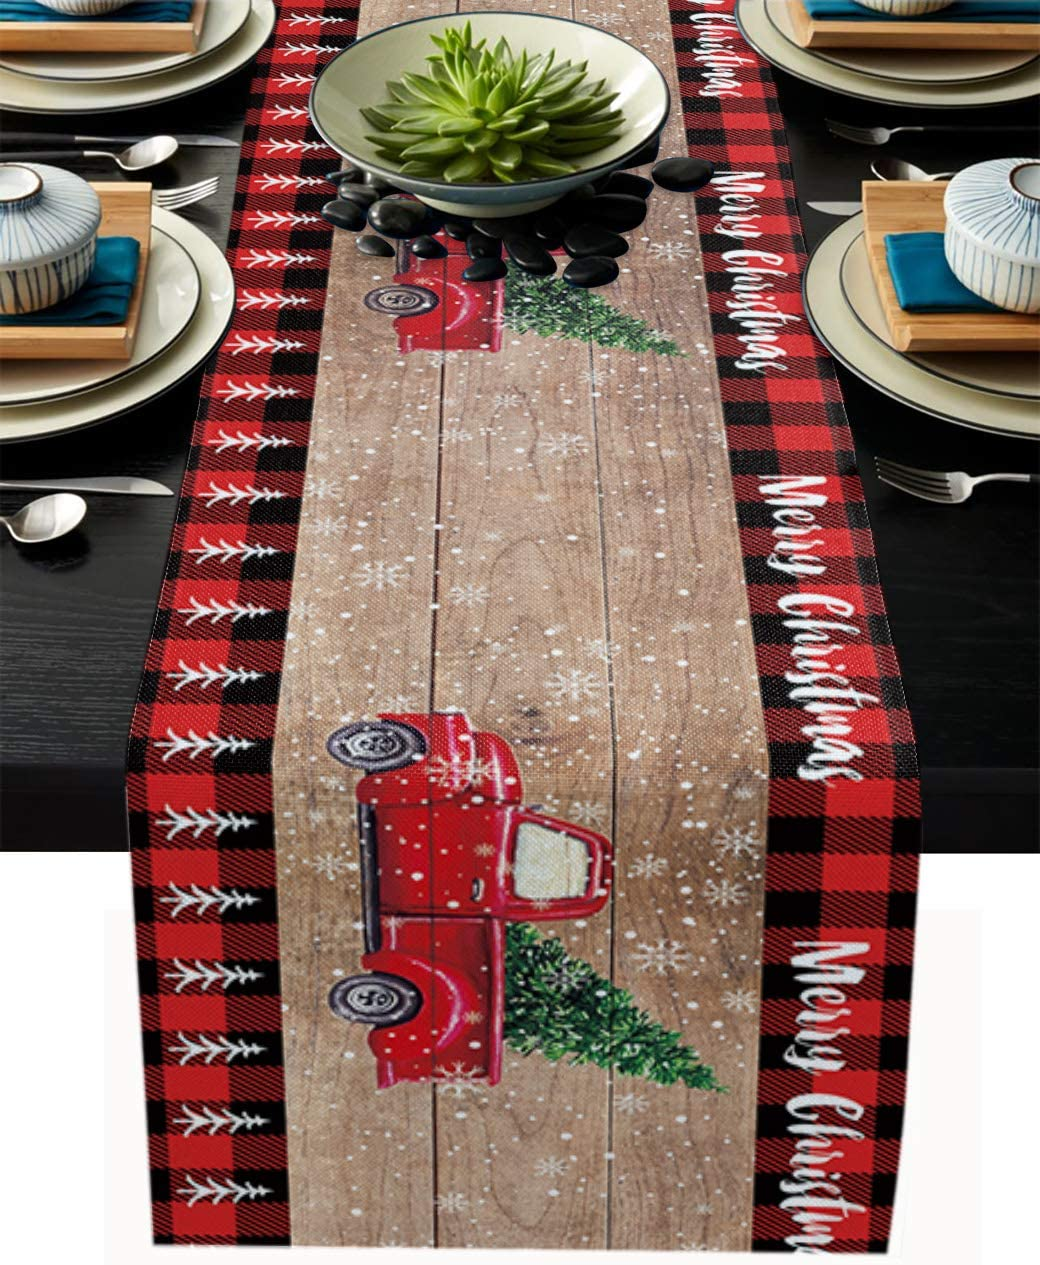 Christmas Red Truck Table Runner-Black Buffalo Plaid Check-Cotton Linen-Winter Dinner Scarf Décor,Long 72 Inch Holiday Xmas Tree Dresser Scarves,Farmhouse Coffee/Dining home Living Room Tablerunner